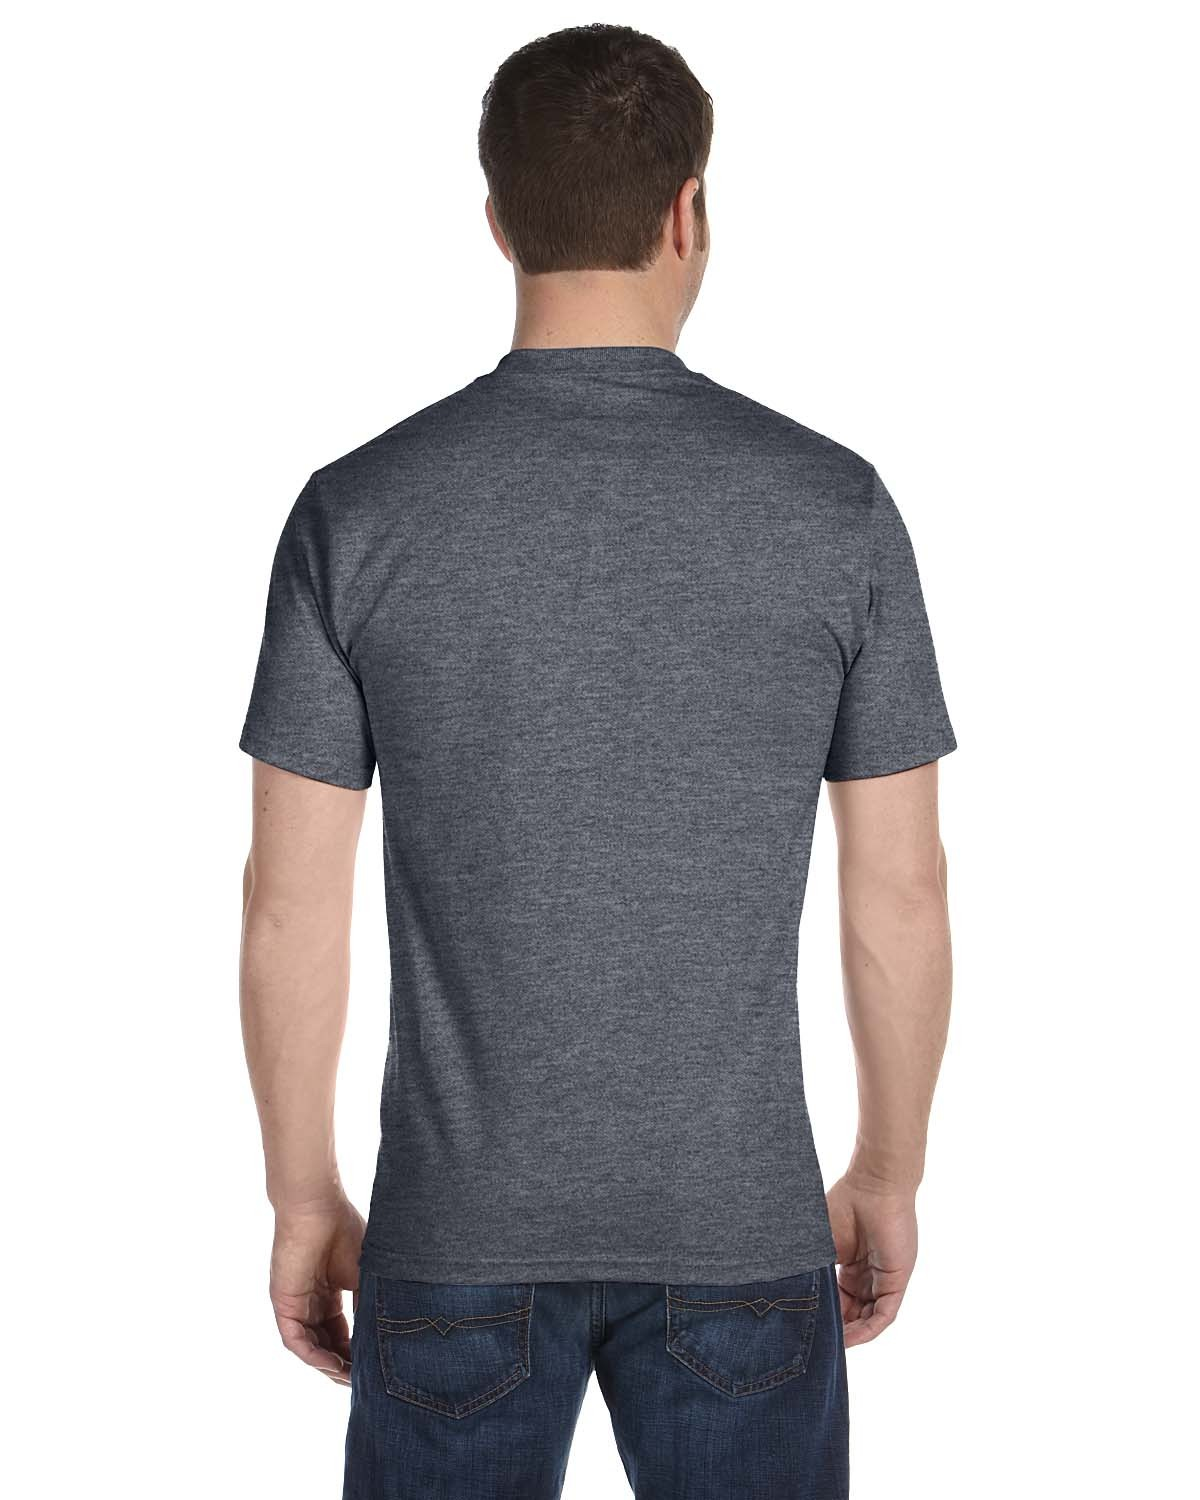 5180 Hanes CHARCOAL HEATHER